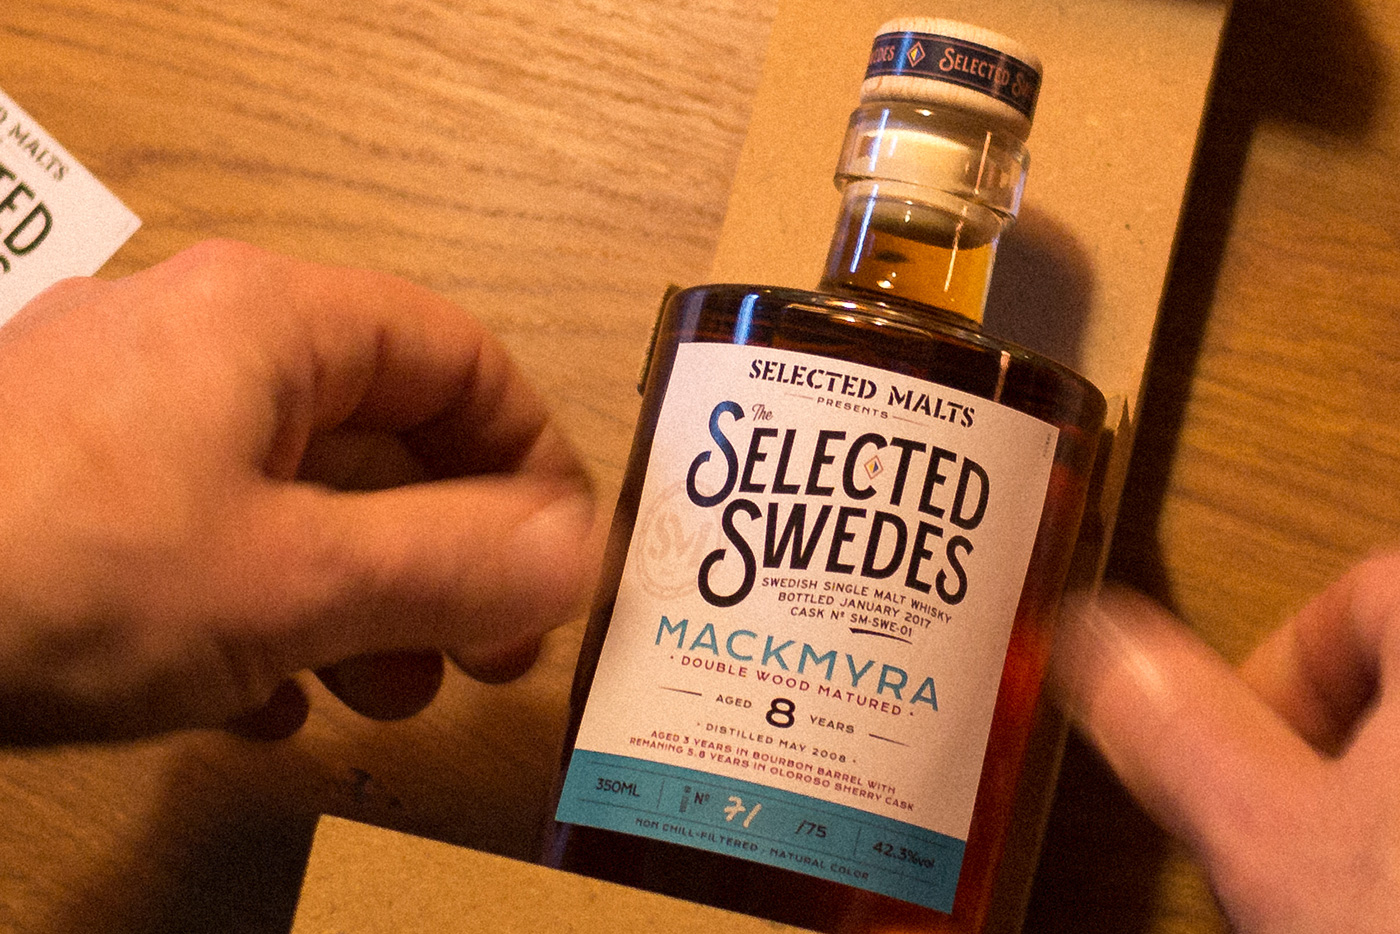 Selected Swedes: Mackmyra